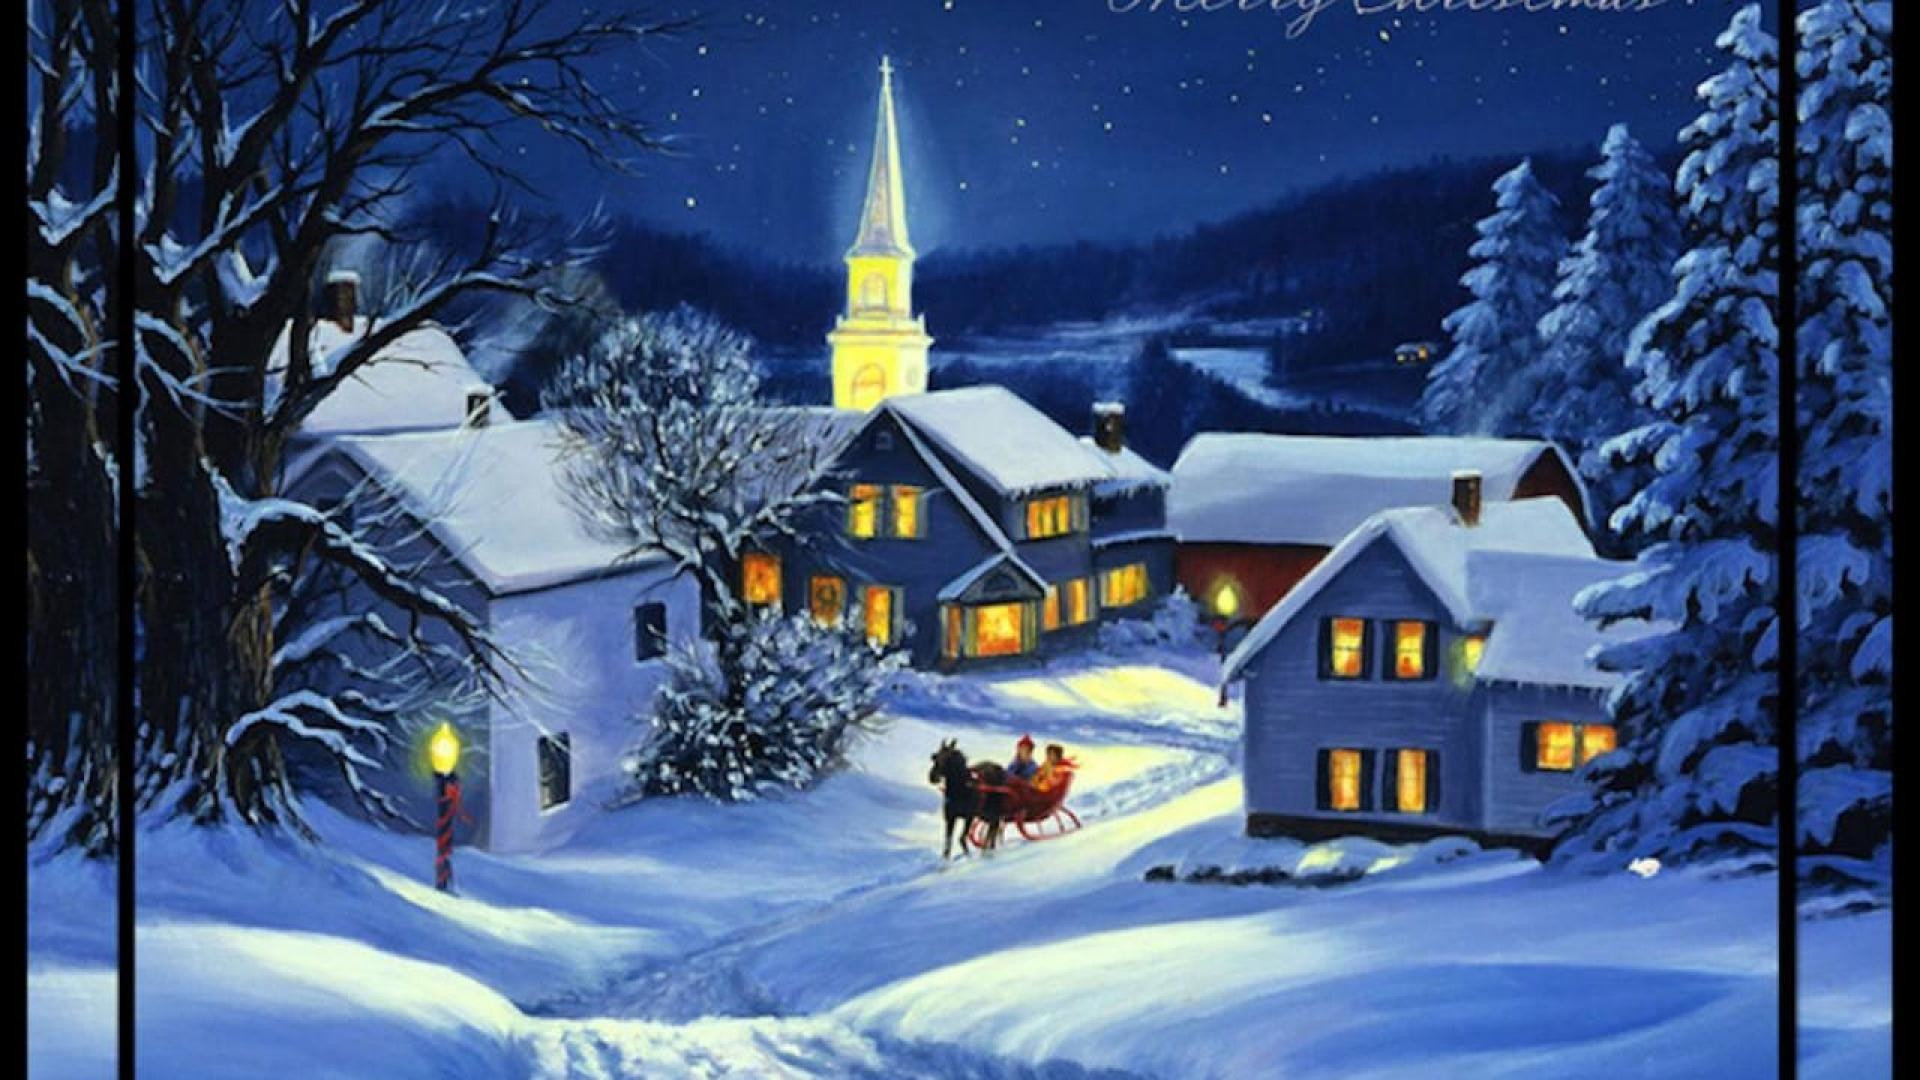 NIGHT BEFORE CHRISTMAS WALLPAPER – (#65556) – HD Wallpapers .